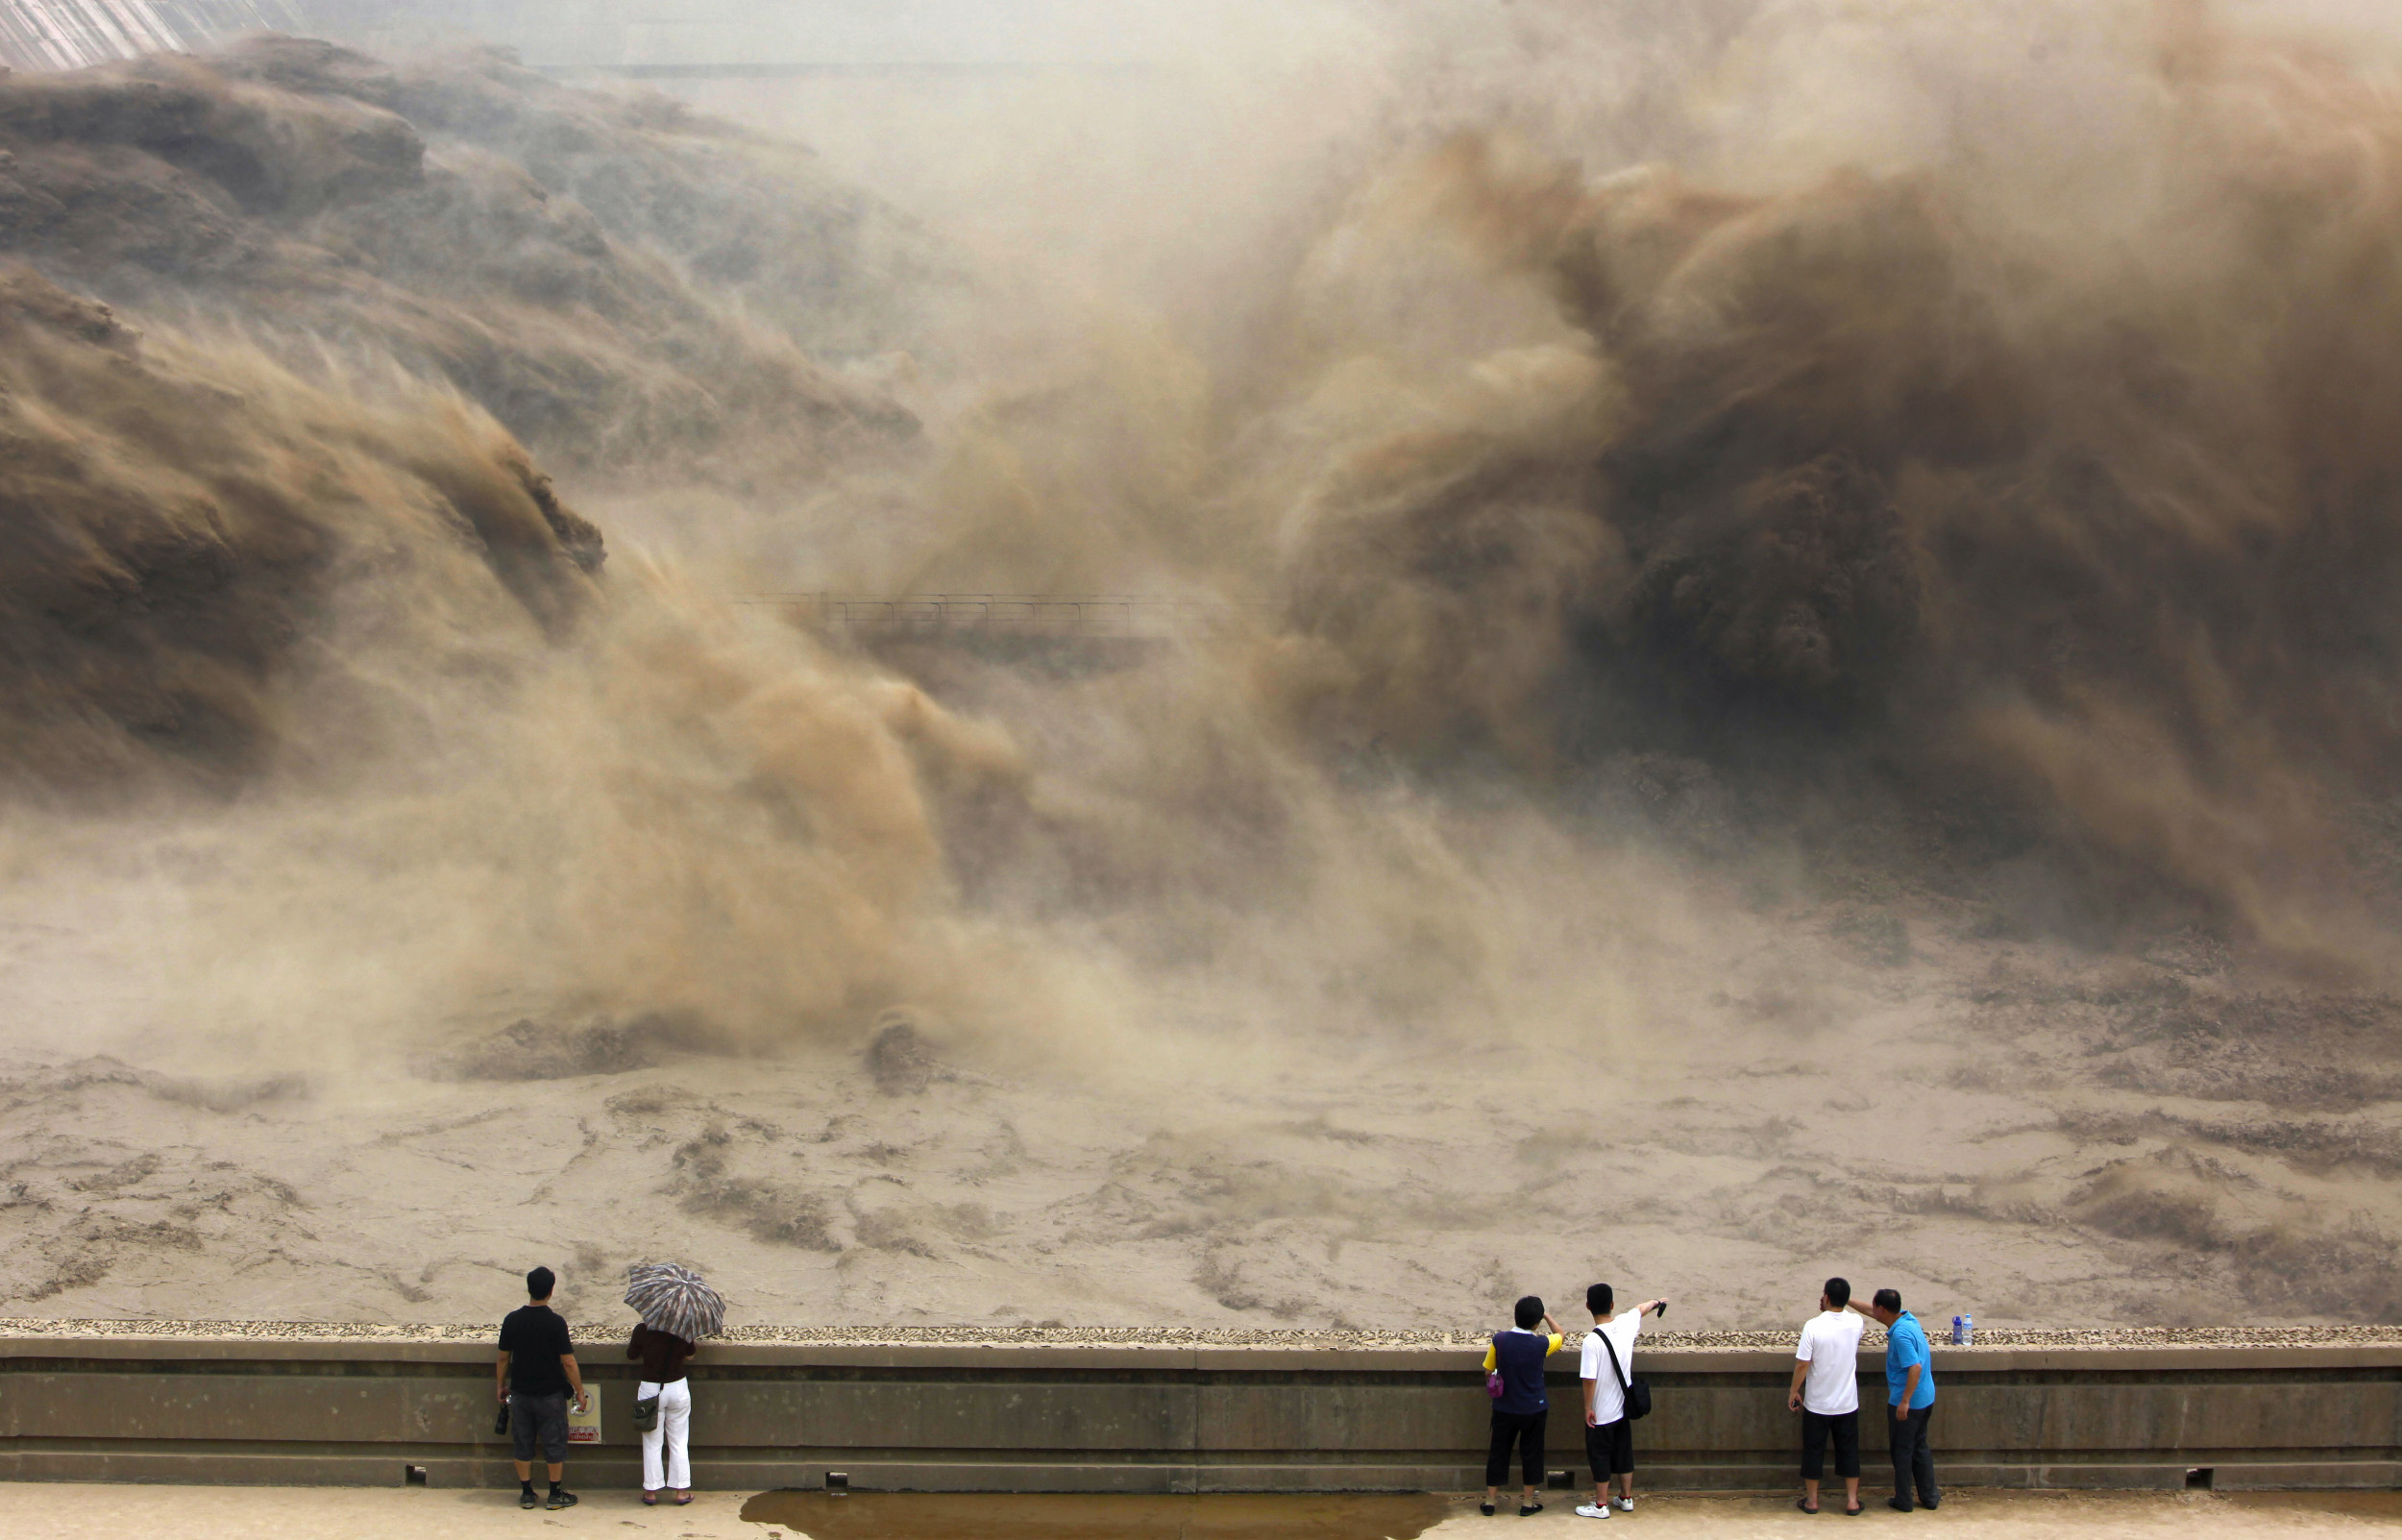 Catastrophic Flood That Killed 300,000 People Entombed Many in the Walls ofAncient Chinese City